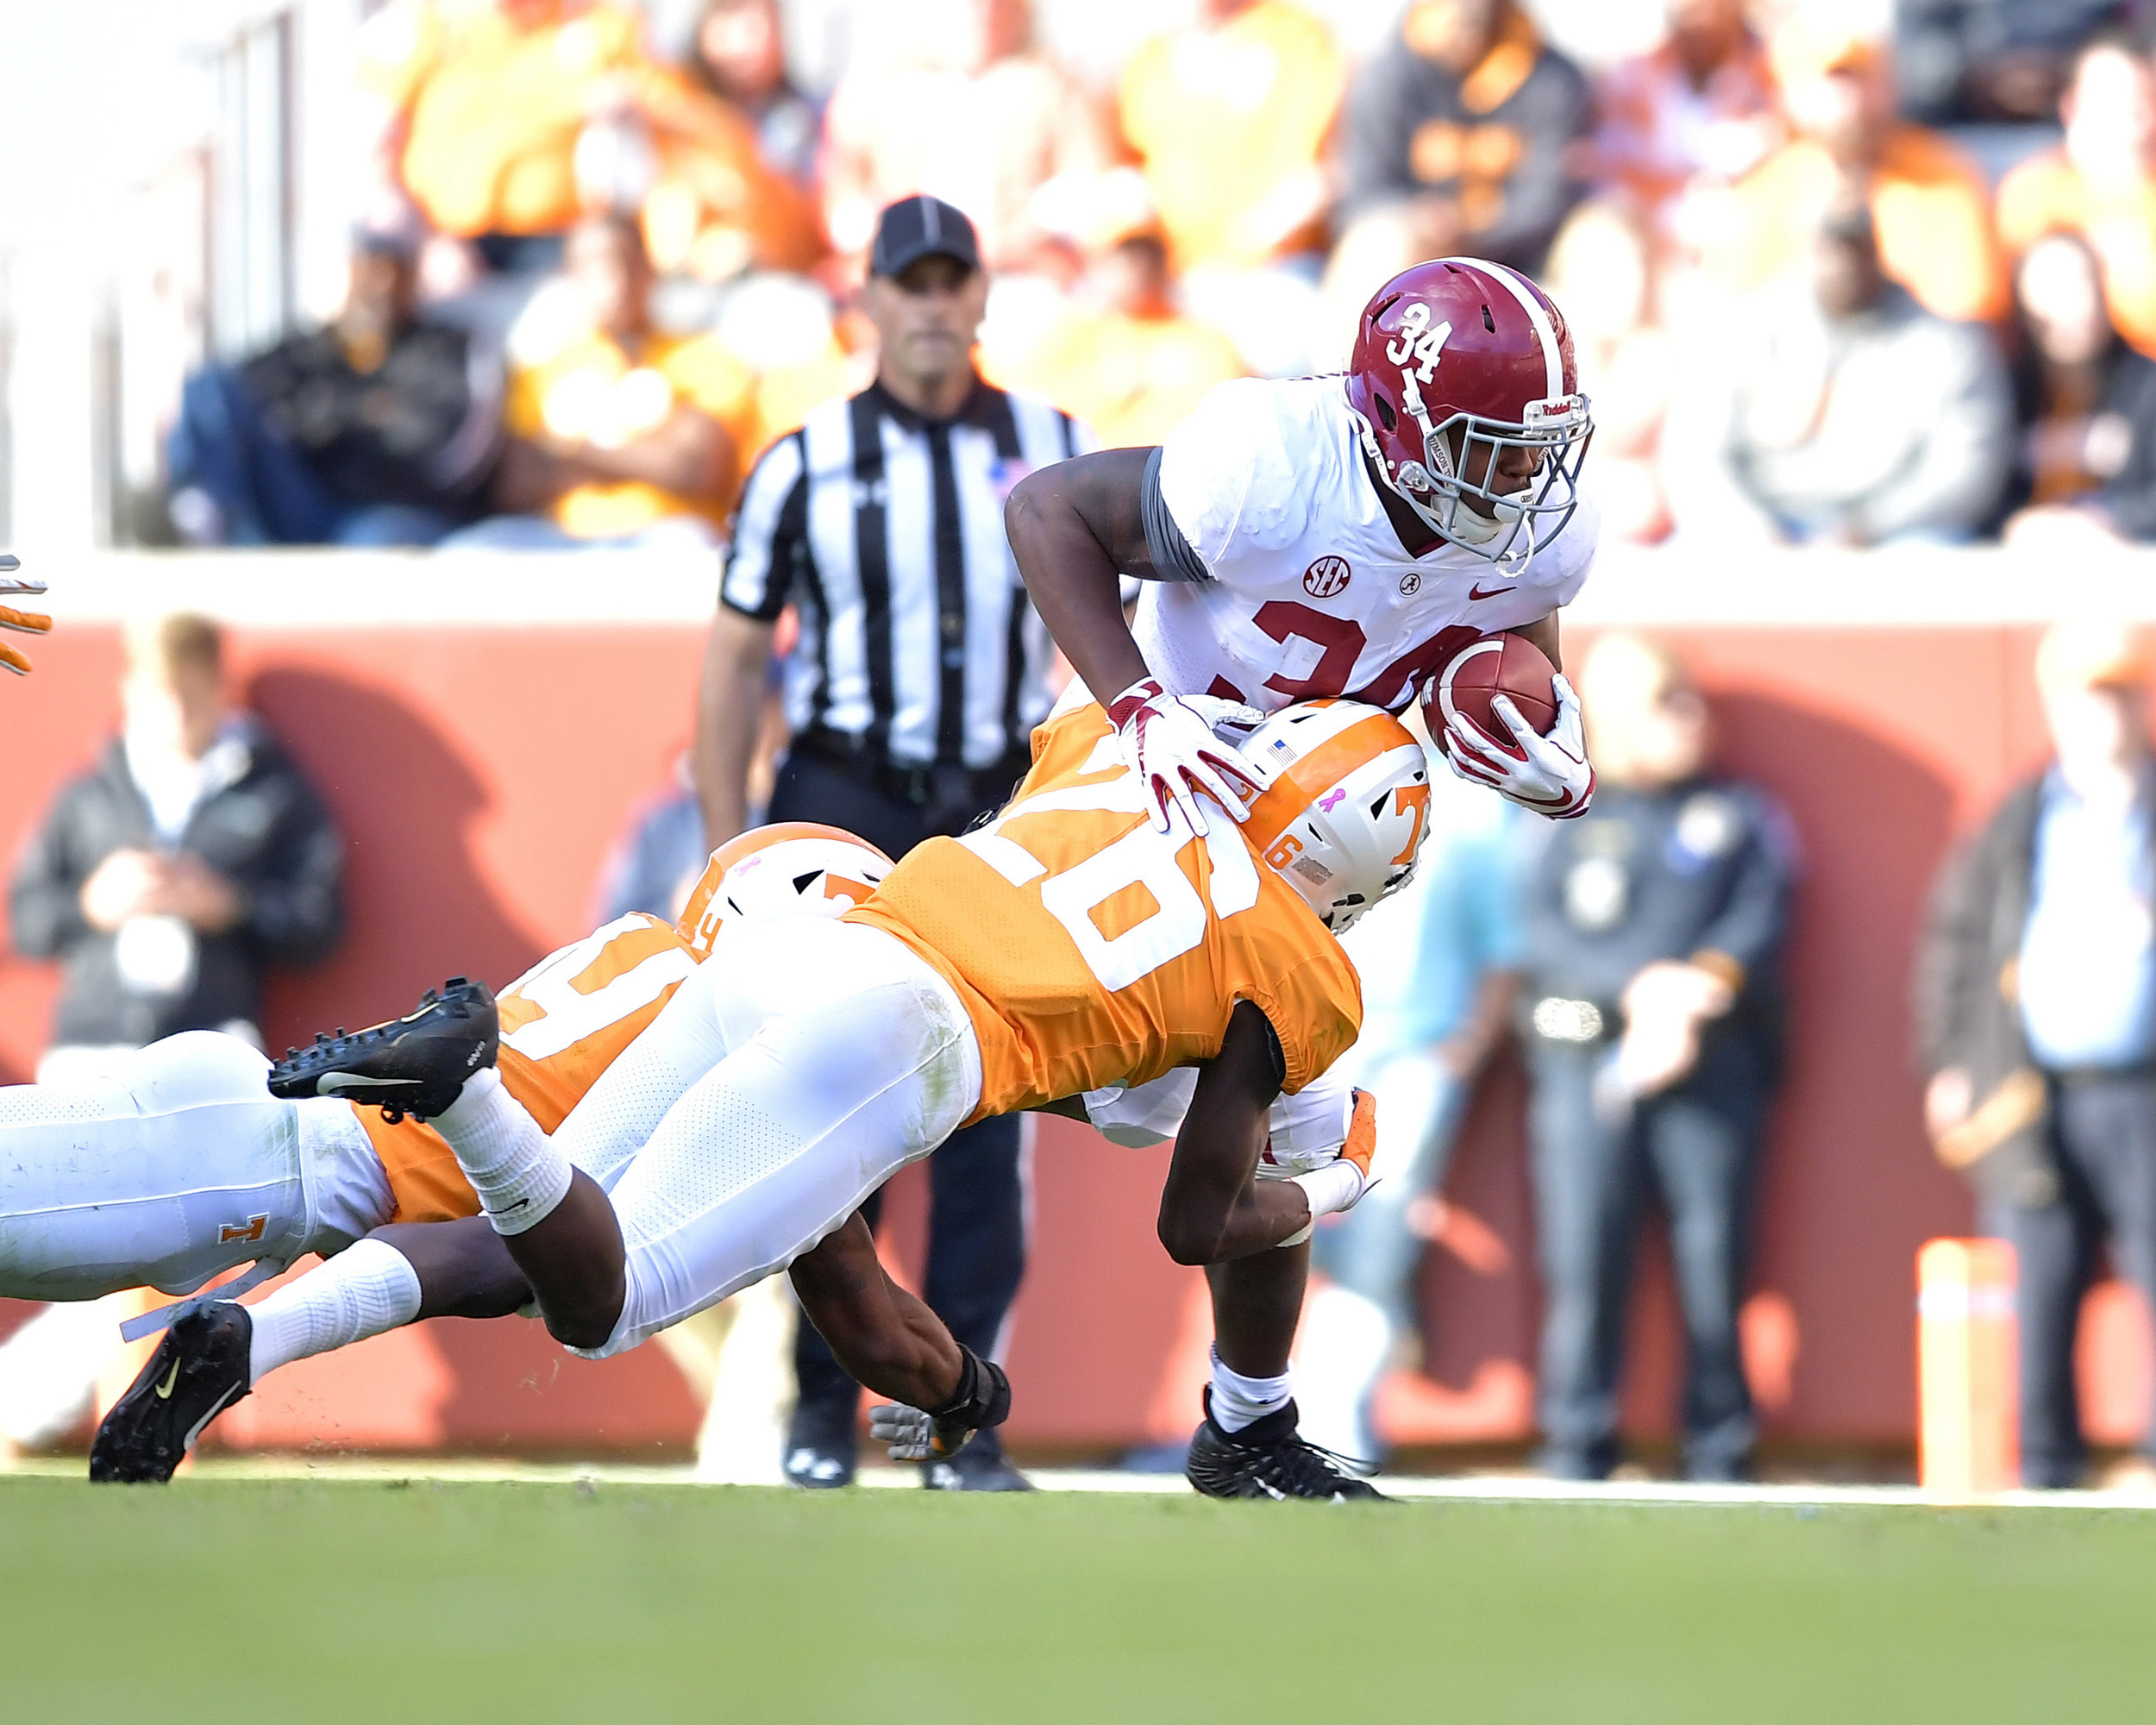 Alabama Crimson Tide running back Damien Harris (34) on a run in the first half of the Alabama at Tennessee NCAA football game on Saturday, Oct. 20, 2018, at Neyland Stadium in Knoxville. Tenn. Alabama wins 58-21. (Photo by Lee Walls)